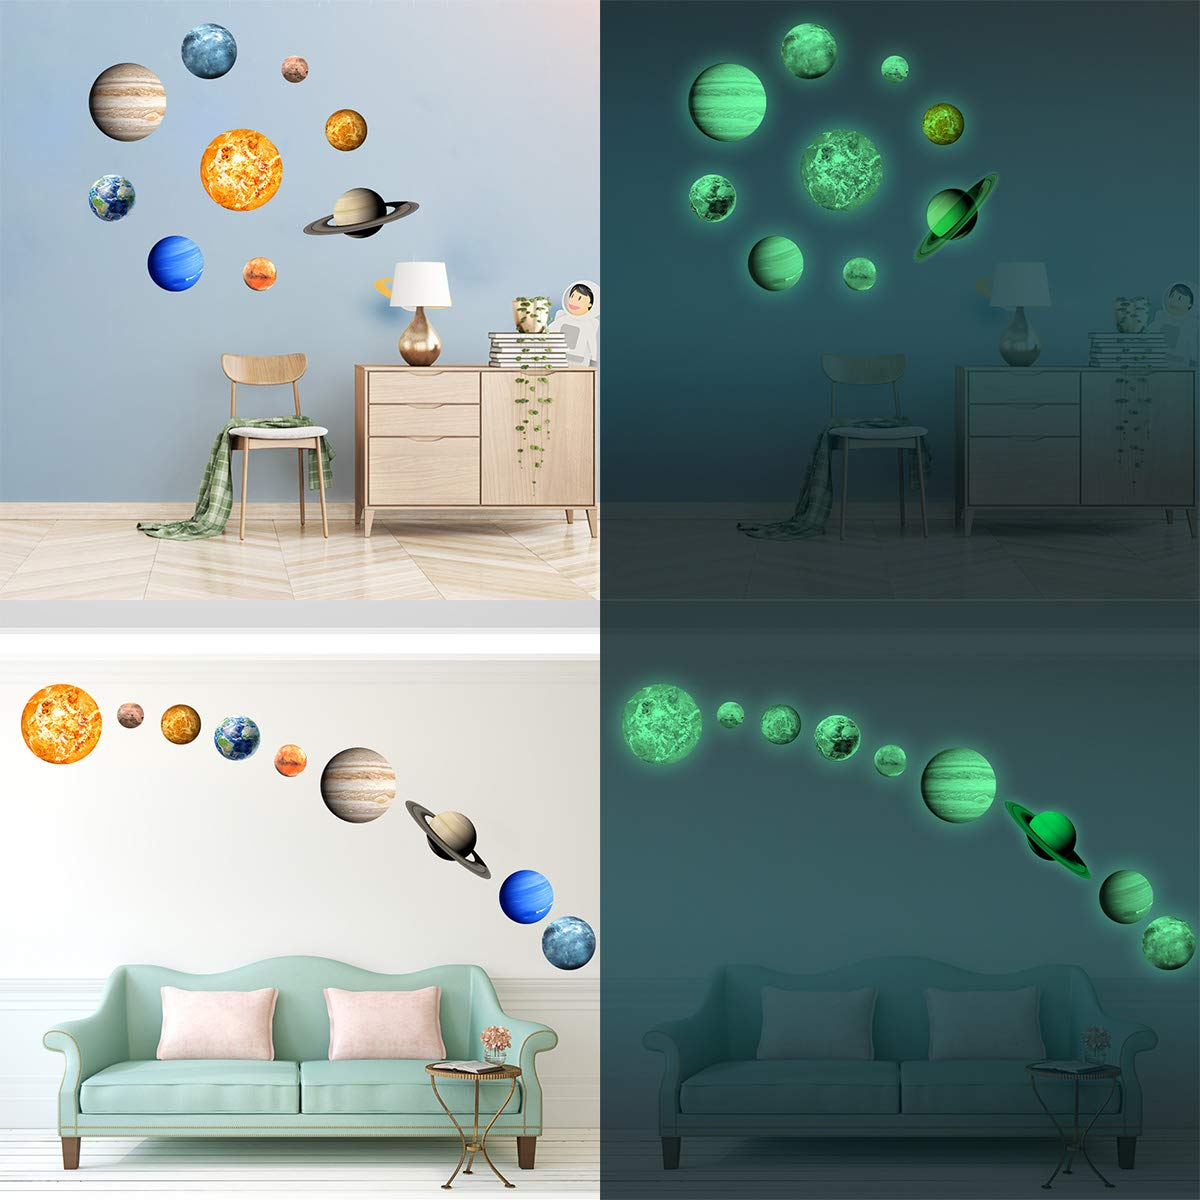 Etiqueta De La Pared Luminosa, 9 Planets Etiqueta De La Pared Del ...